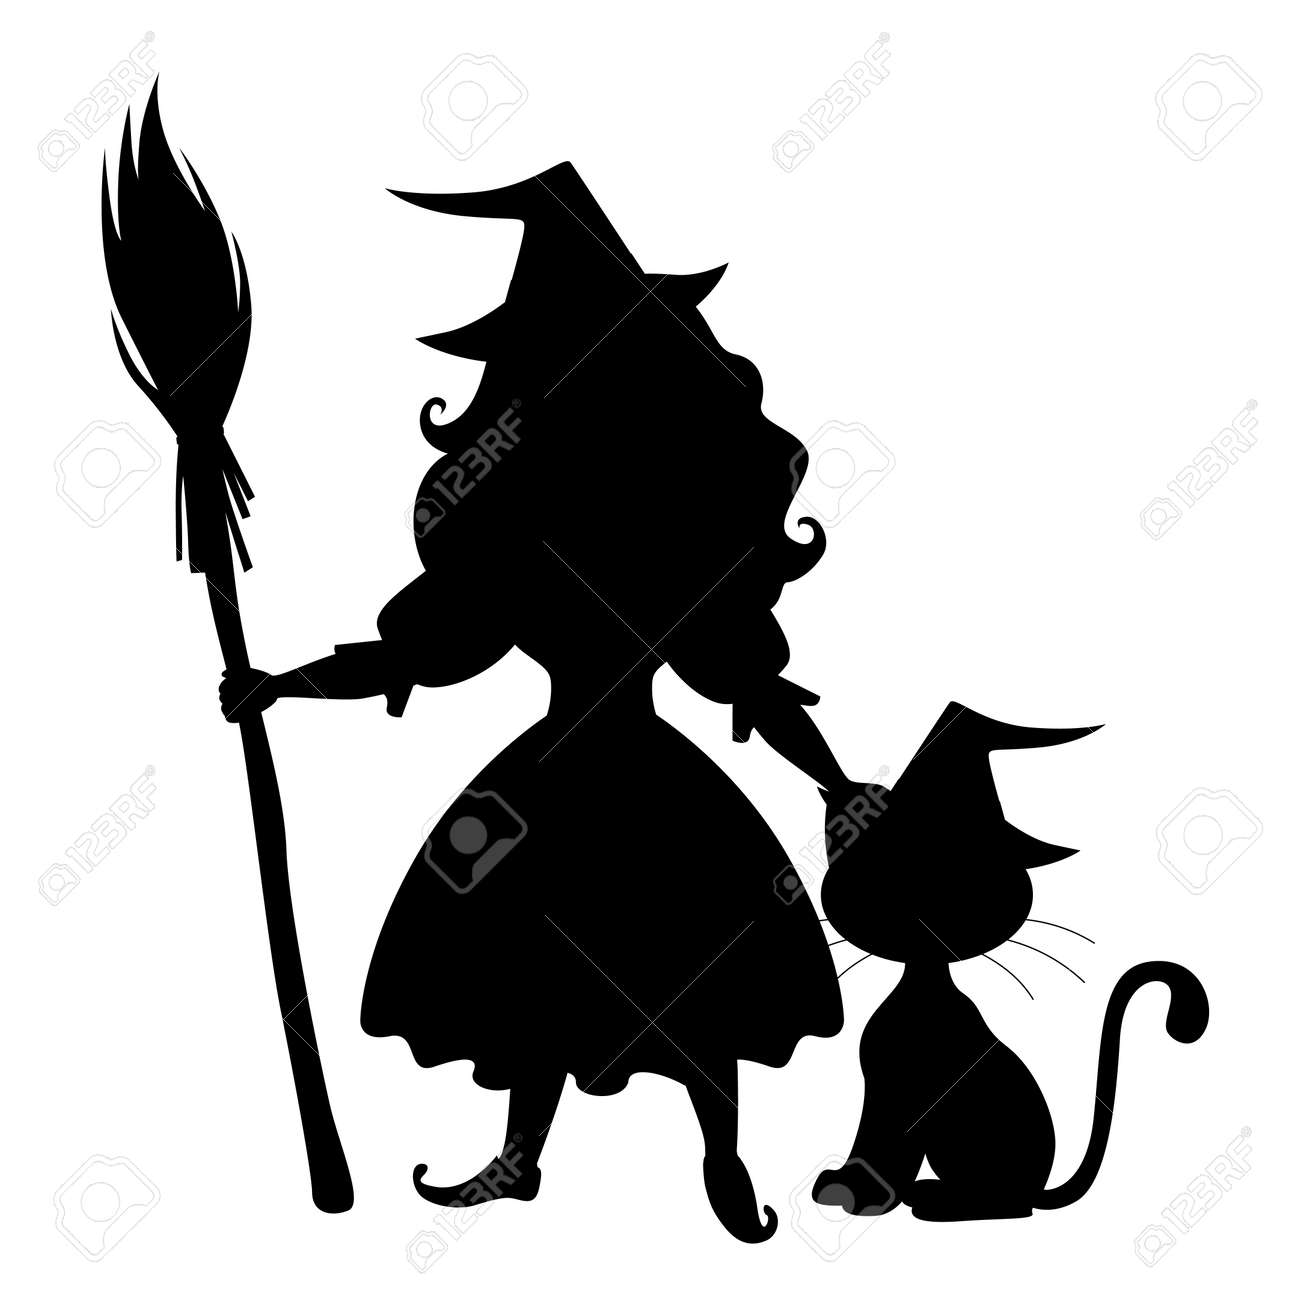 Illustrations of Halloween silhouette cute witch and cat